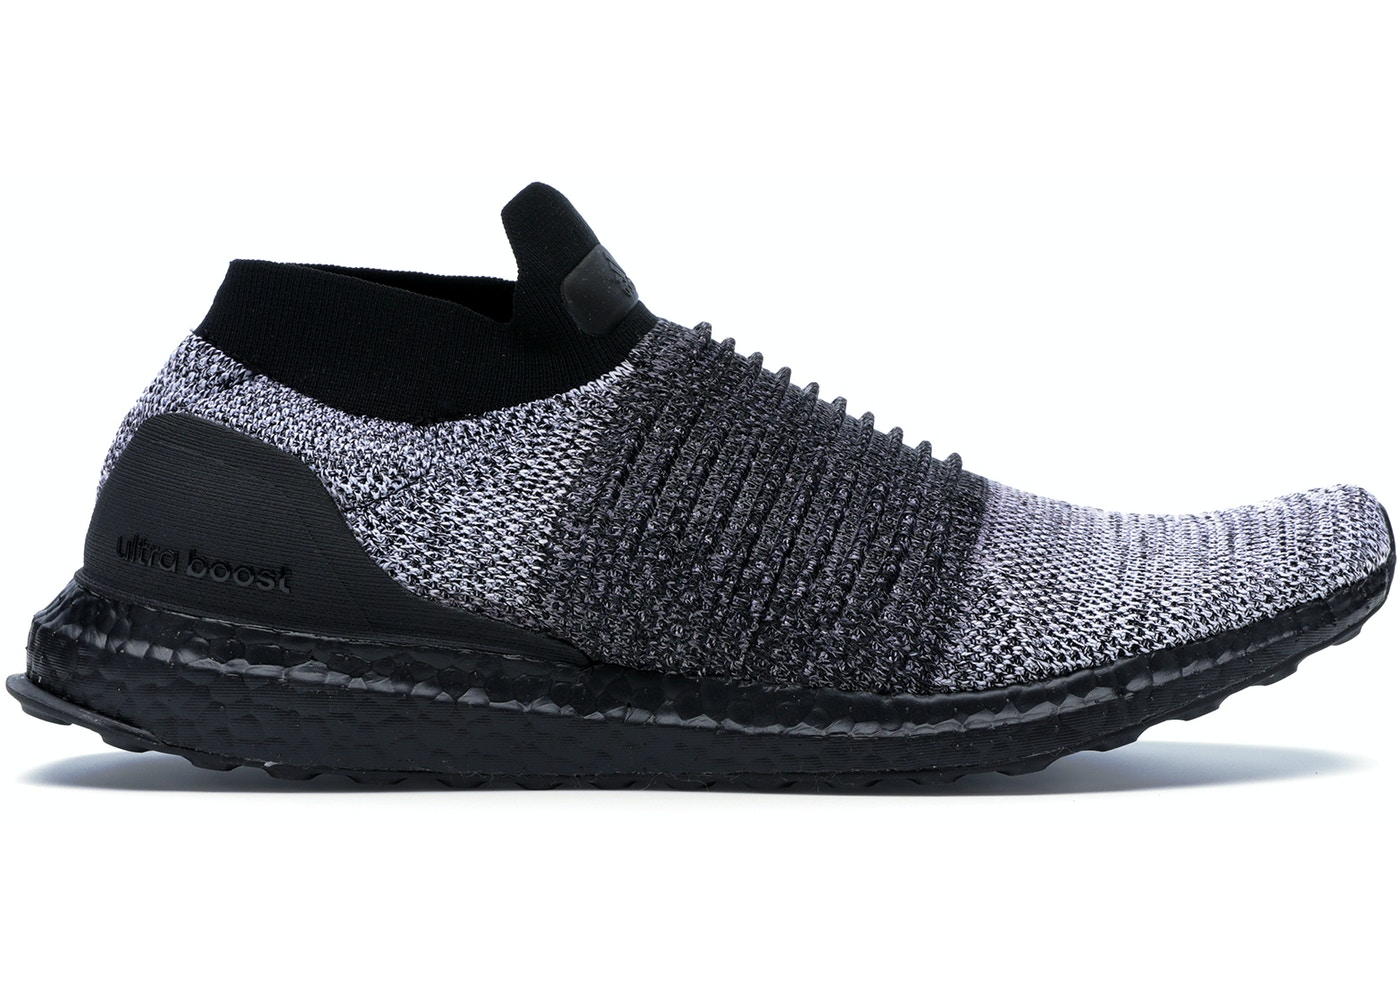 e0d3fe24b3d adidas Ultra Boost Laceless Mid Black Oreo - BB6137